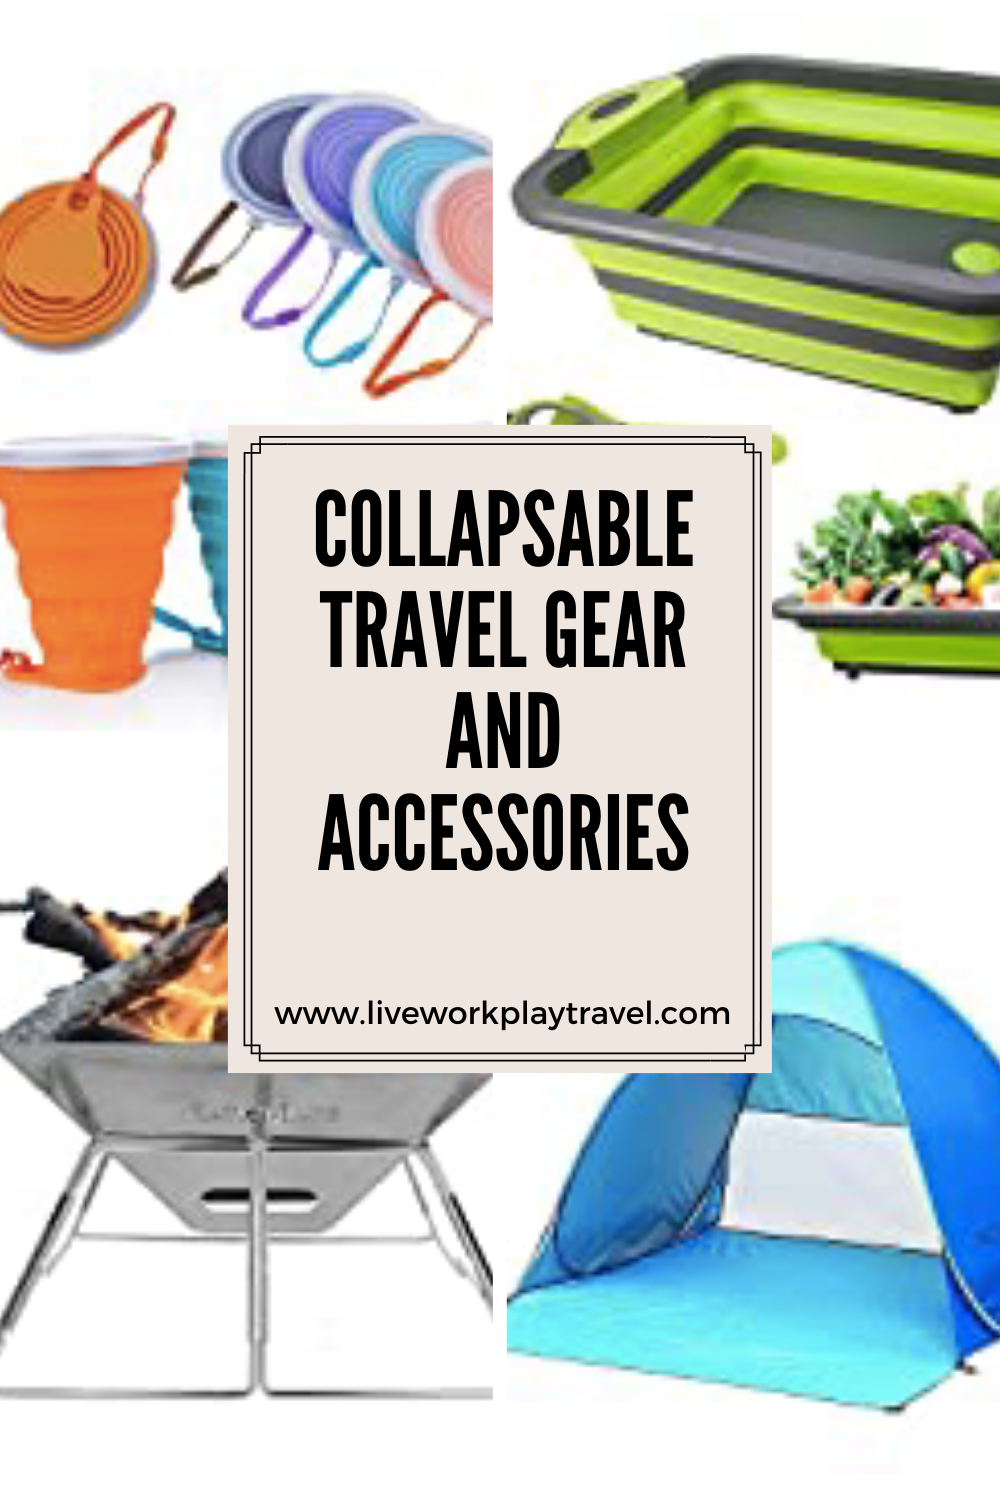 Collapsable Travel Gear And Accessories.